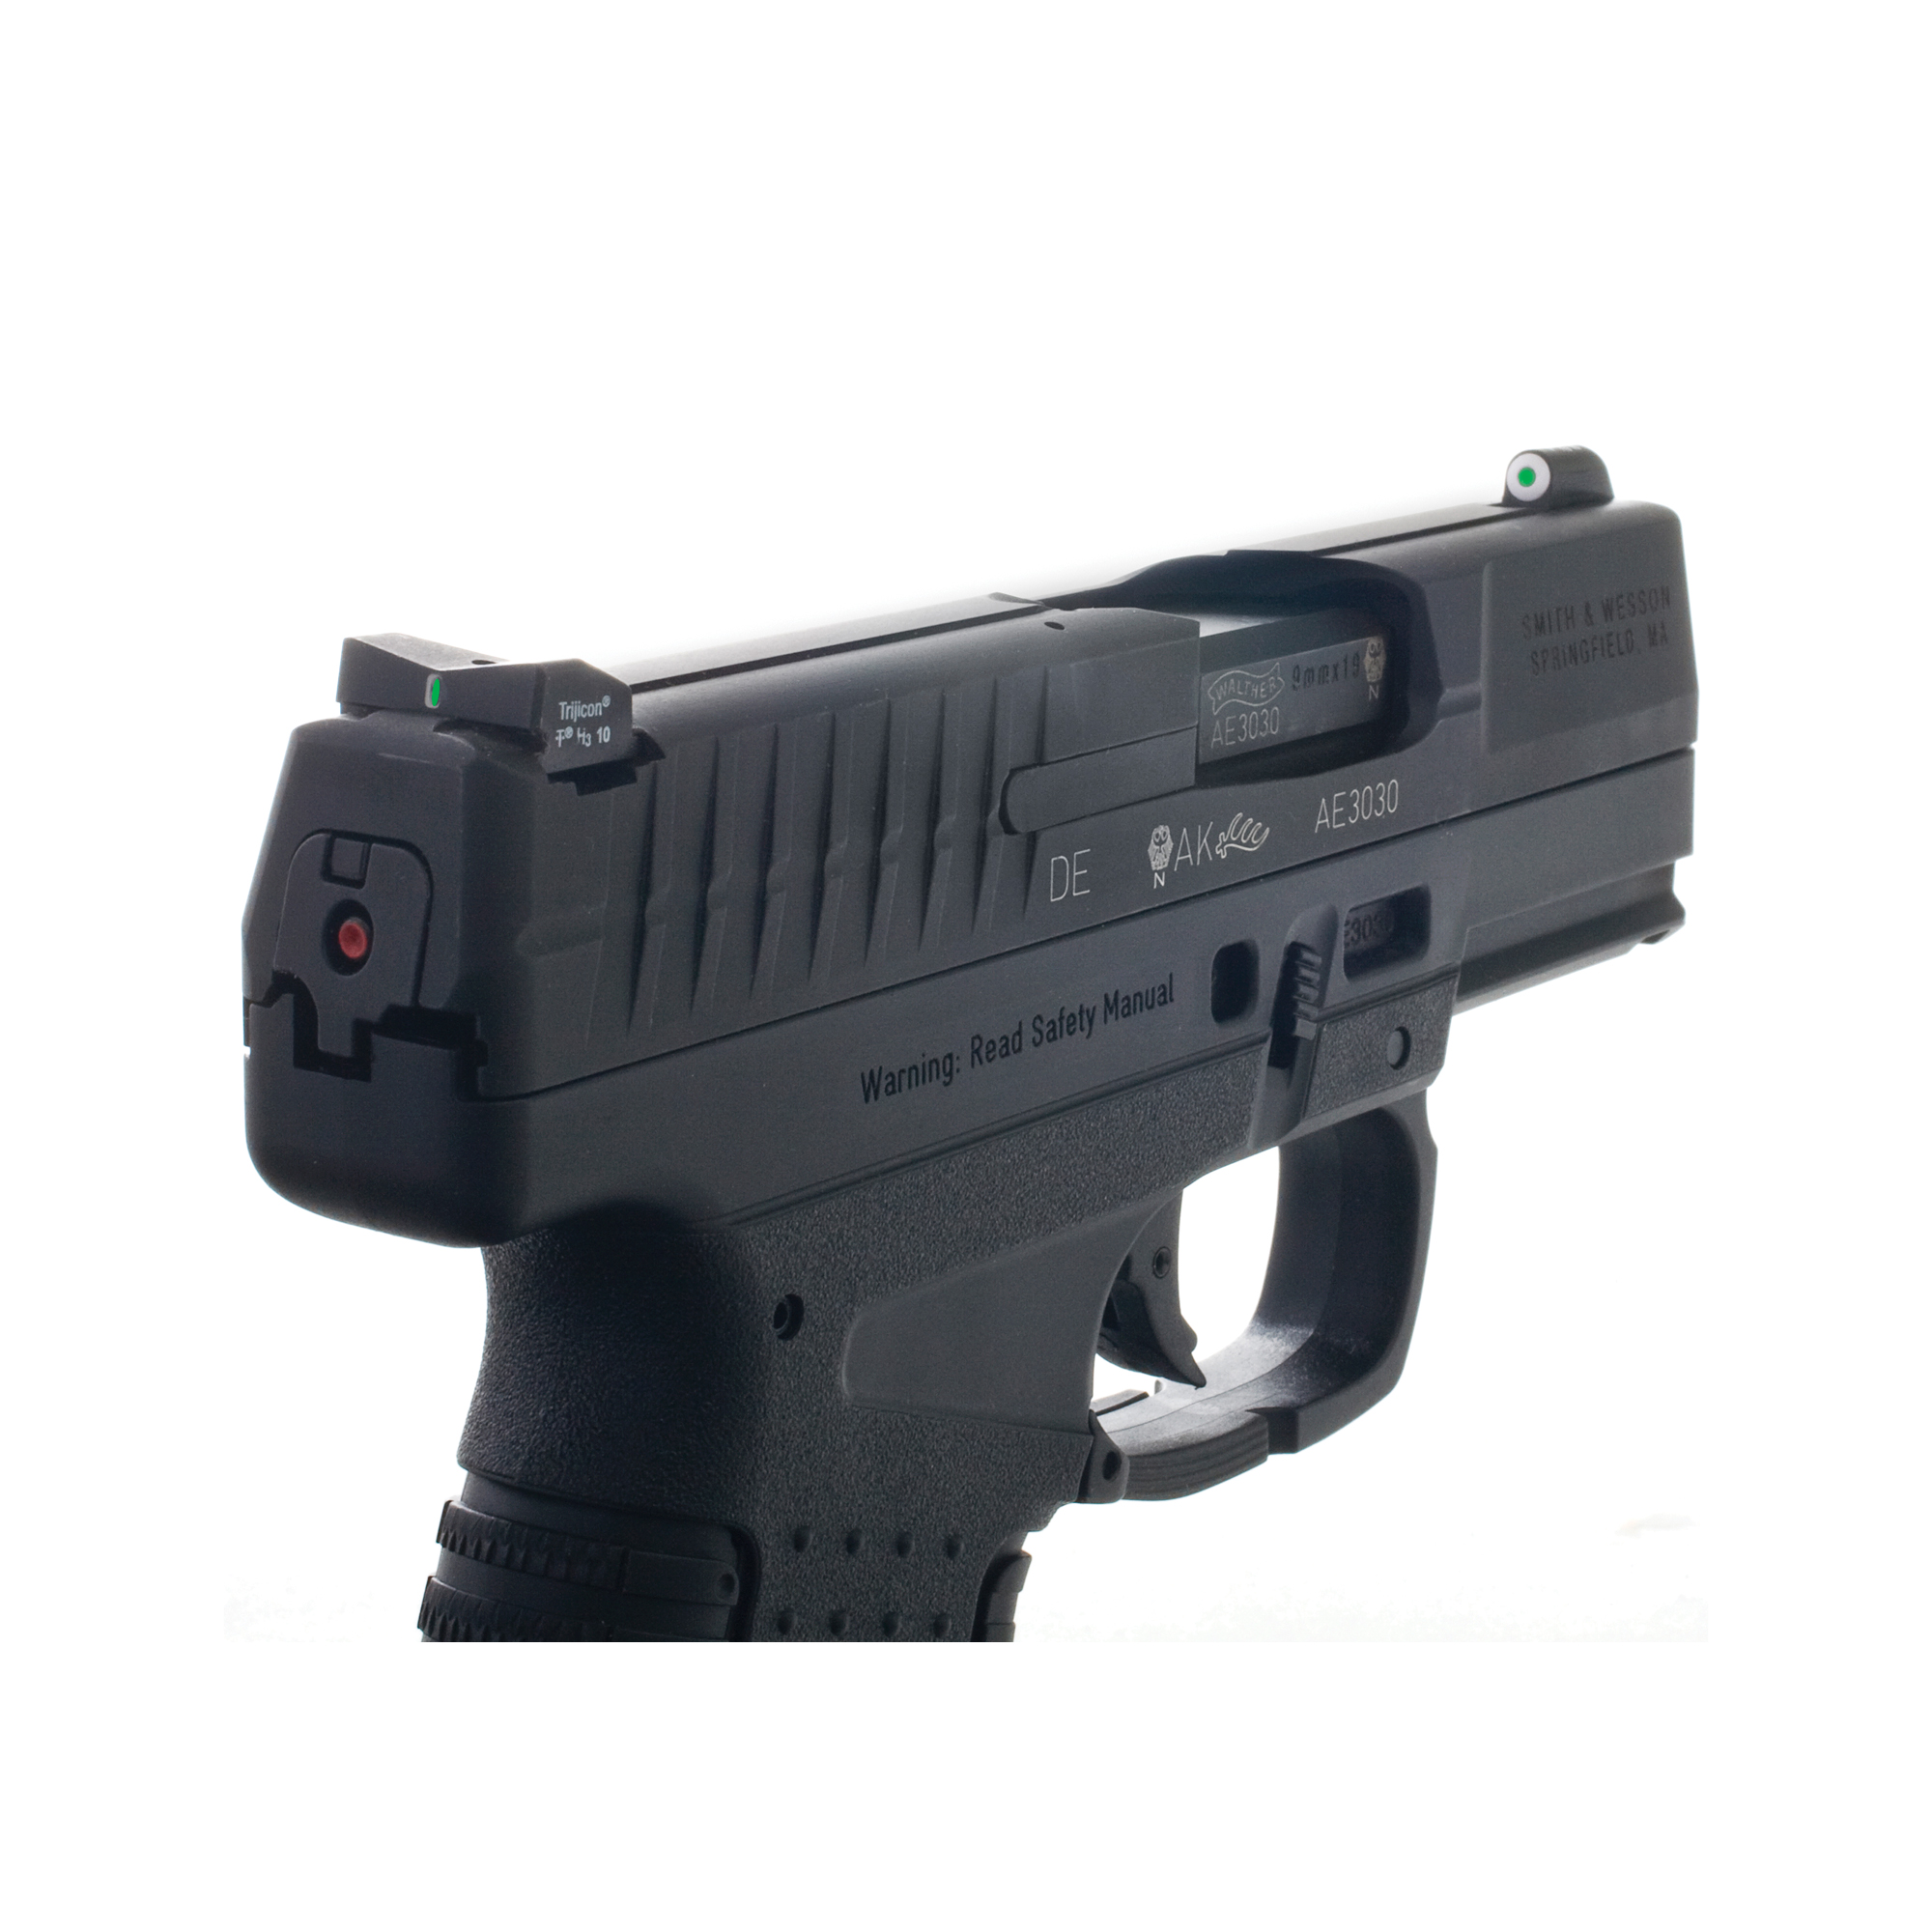 "The XS DXT Big Dot night sight is the ultimate defensive sight set. Fits Walther PPS"" PPS M2"" & CCP (installing XS on CCP will damage screw channel; factory sights cannot go back on firearm after XS has been installed). Precision machined in Fort Worth"" TX"" XS Sights feature a Big Dot Tritium front sight and express rear sight with a vertical tritium stripe for fast sight acquisition in all light conditions. Big Dot demands your attention - even in high stress and for those with poor eyesight"" aids in rapidly achieving combat effective hits. White dot reflects ambient light for best visibility in low light. Shallow V-Notch rear provides an unobstructed view of the front sight"" along with a greater field of view down range"" especially when moving and shooting. Day-Light"" Half-Light"" or Low-Light"" just ""dot the i"" and center the dot over your target within 15 yards. Outside Diameter Big Dot 0.188""; fits in common holsters. Installation might require filing to fit sight to dovetail"" do not use a sight press/pusher tool."